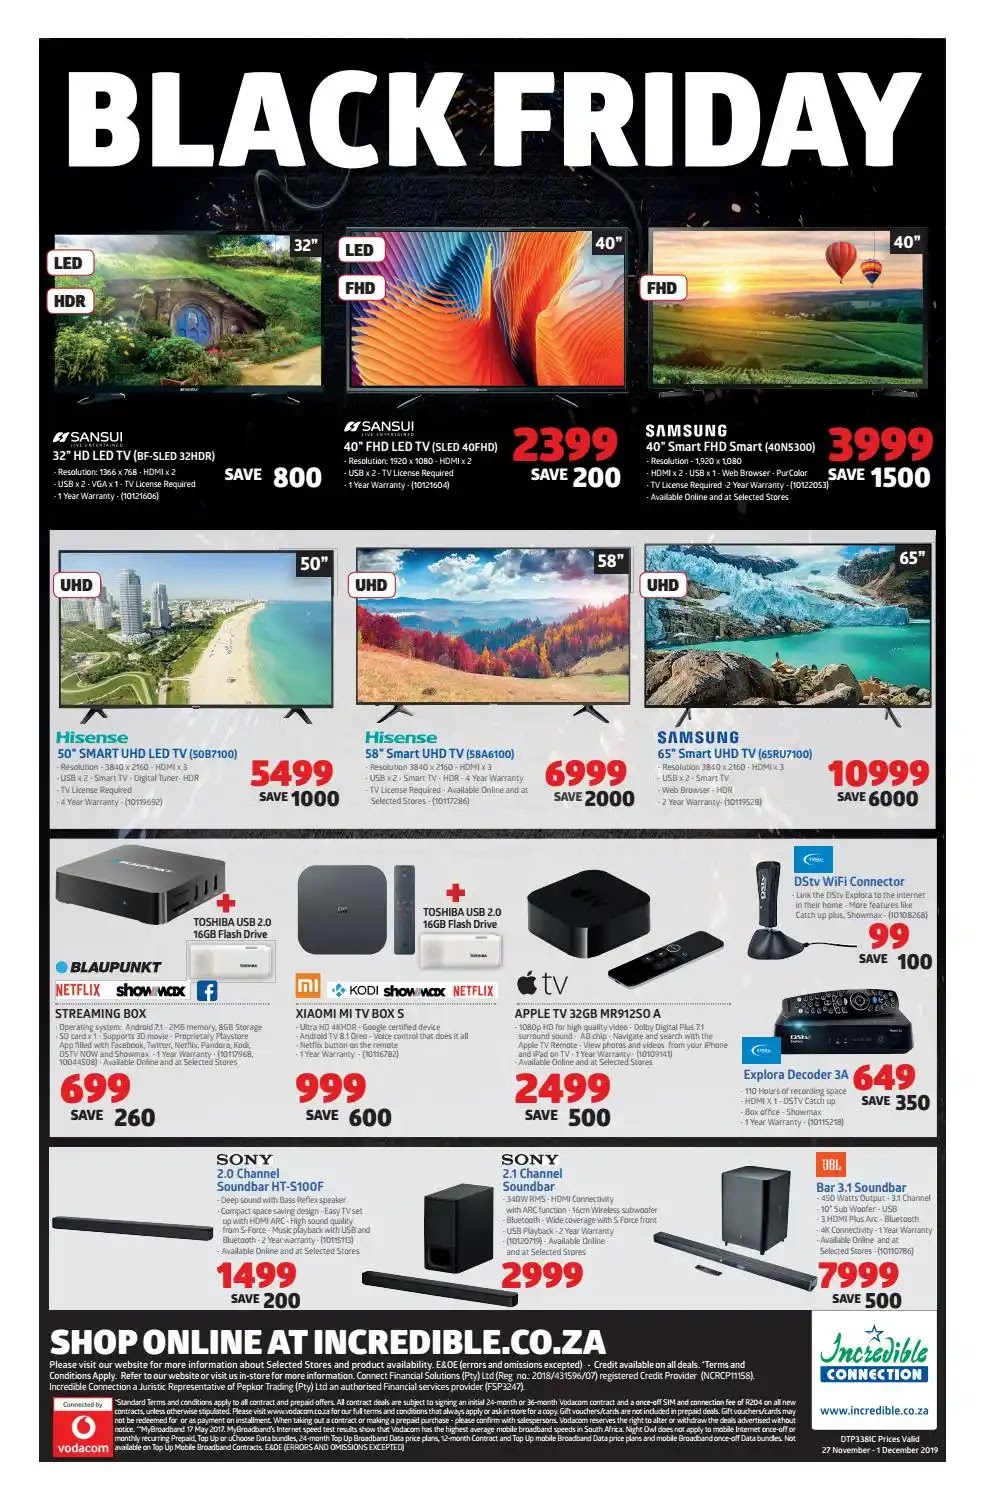 Incredible Connection Black Friday Deals  -  Page 8